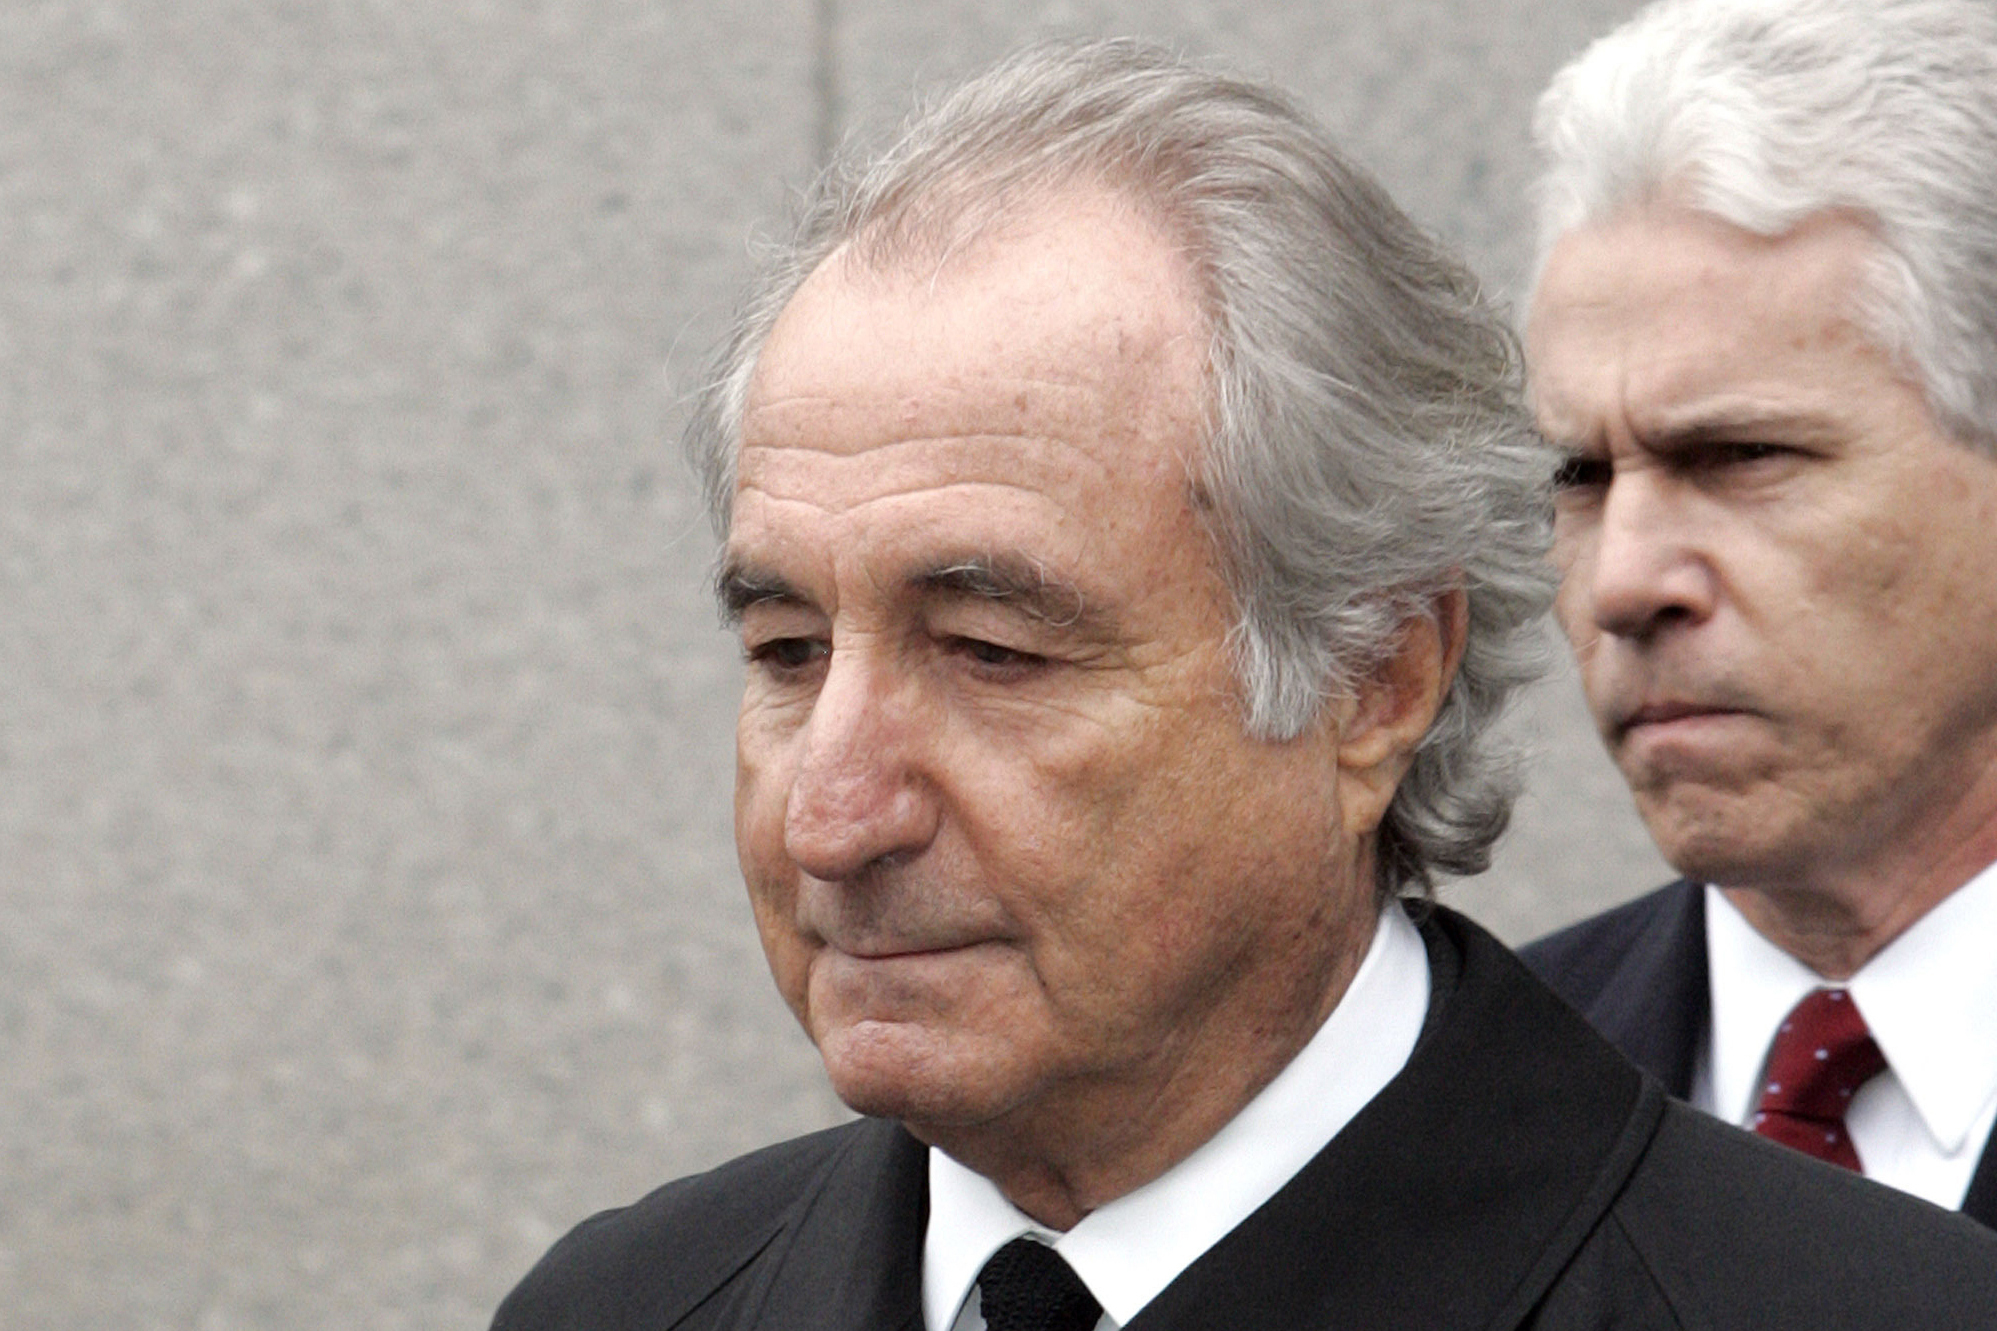 Former financier Bernie Madoff exits federal court in Manhattan, in New York, in March 2009.